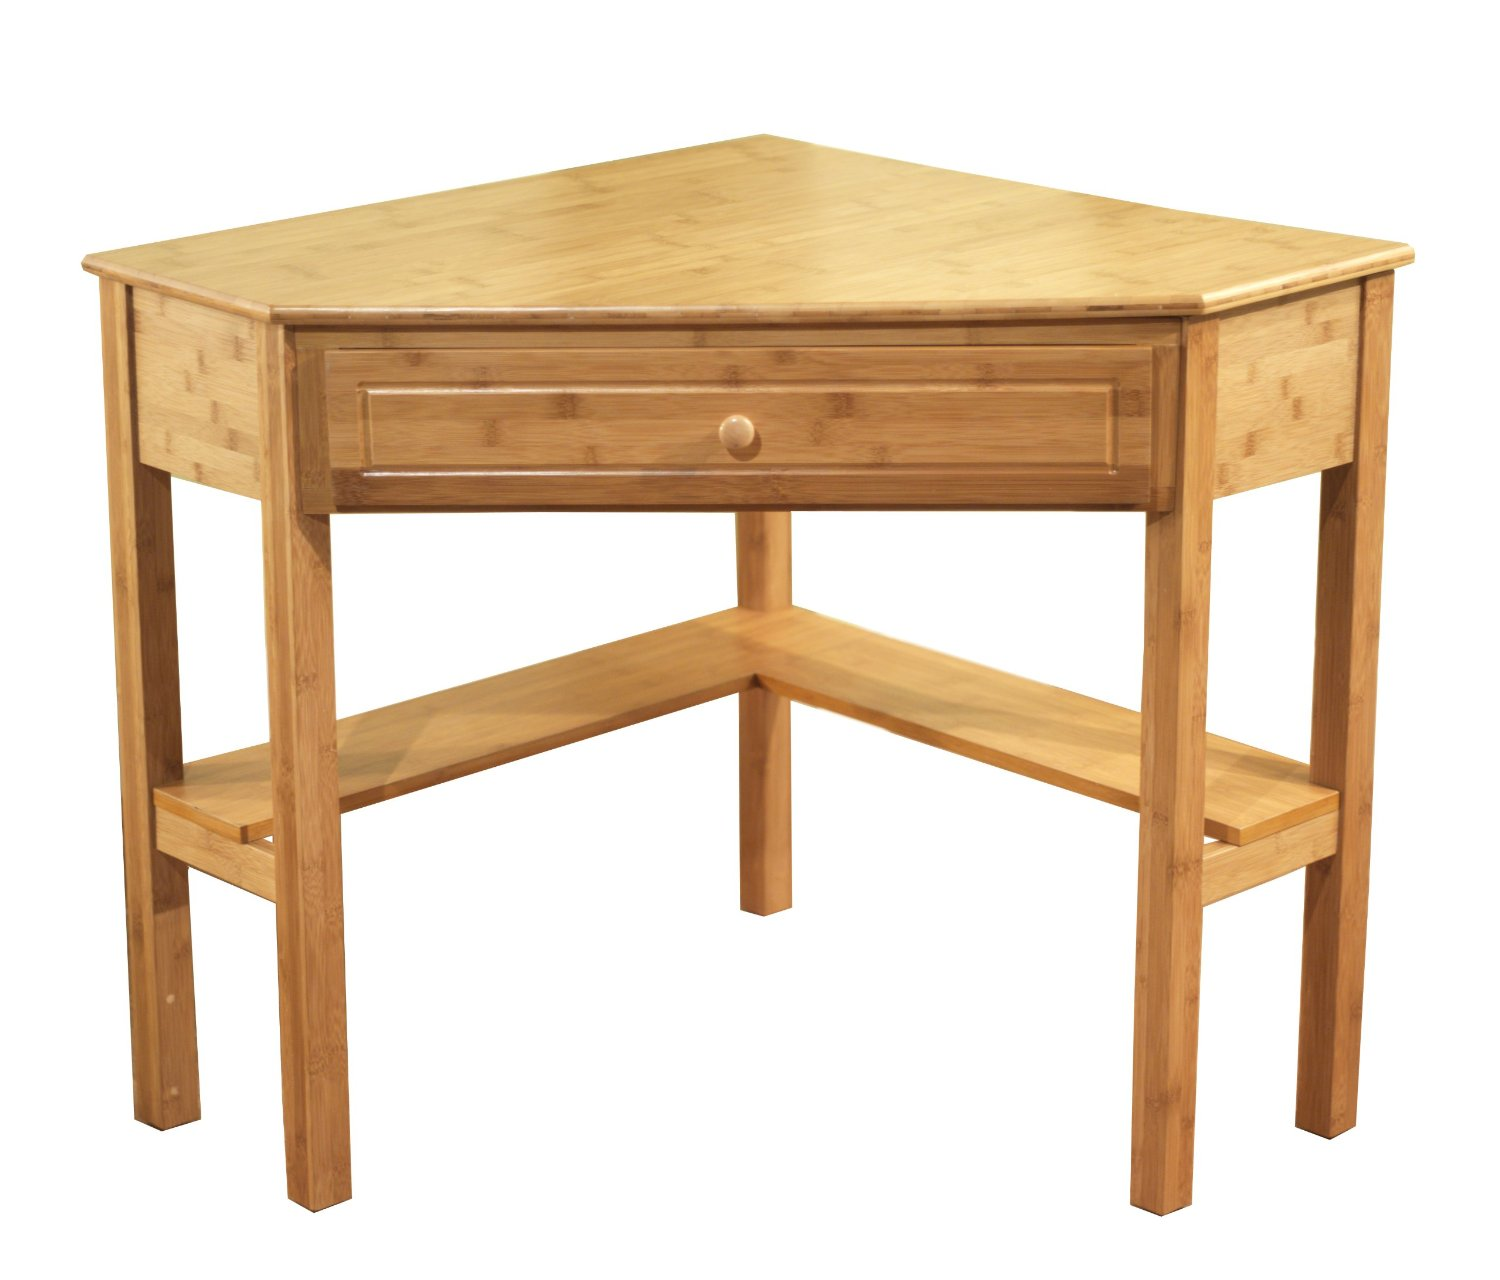 Buy Small Corner Desk For Small Areas: Small Corner Desk